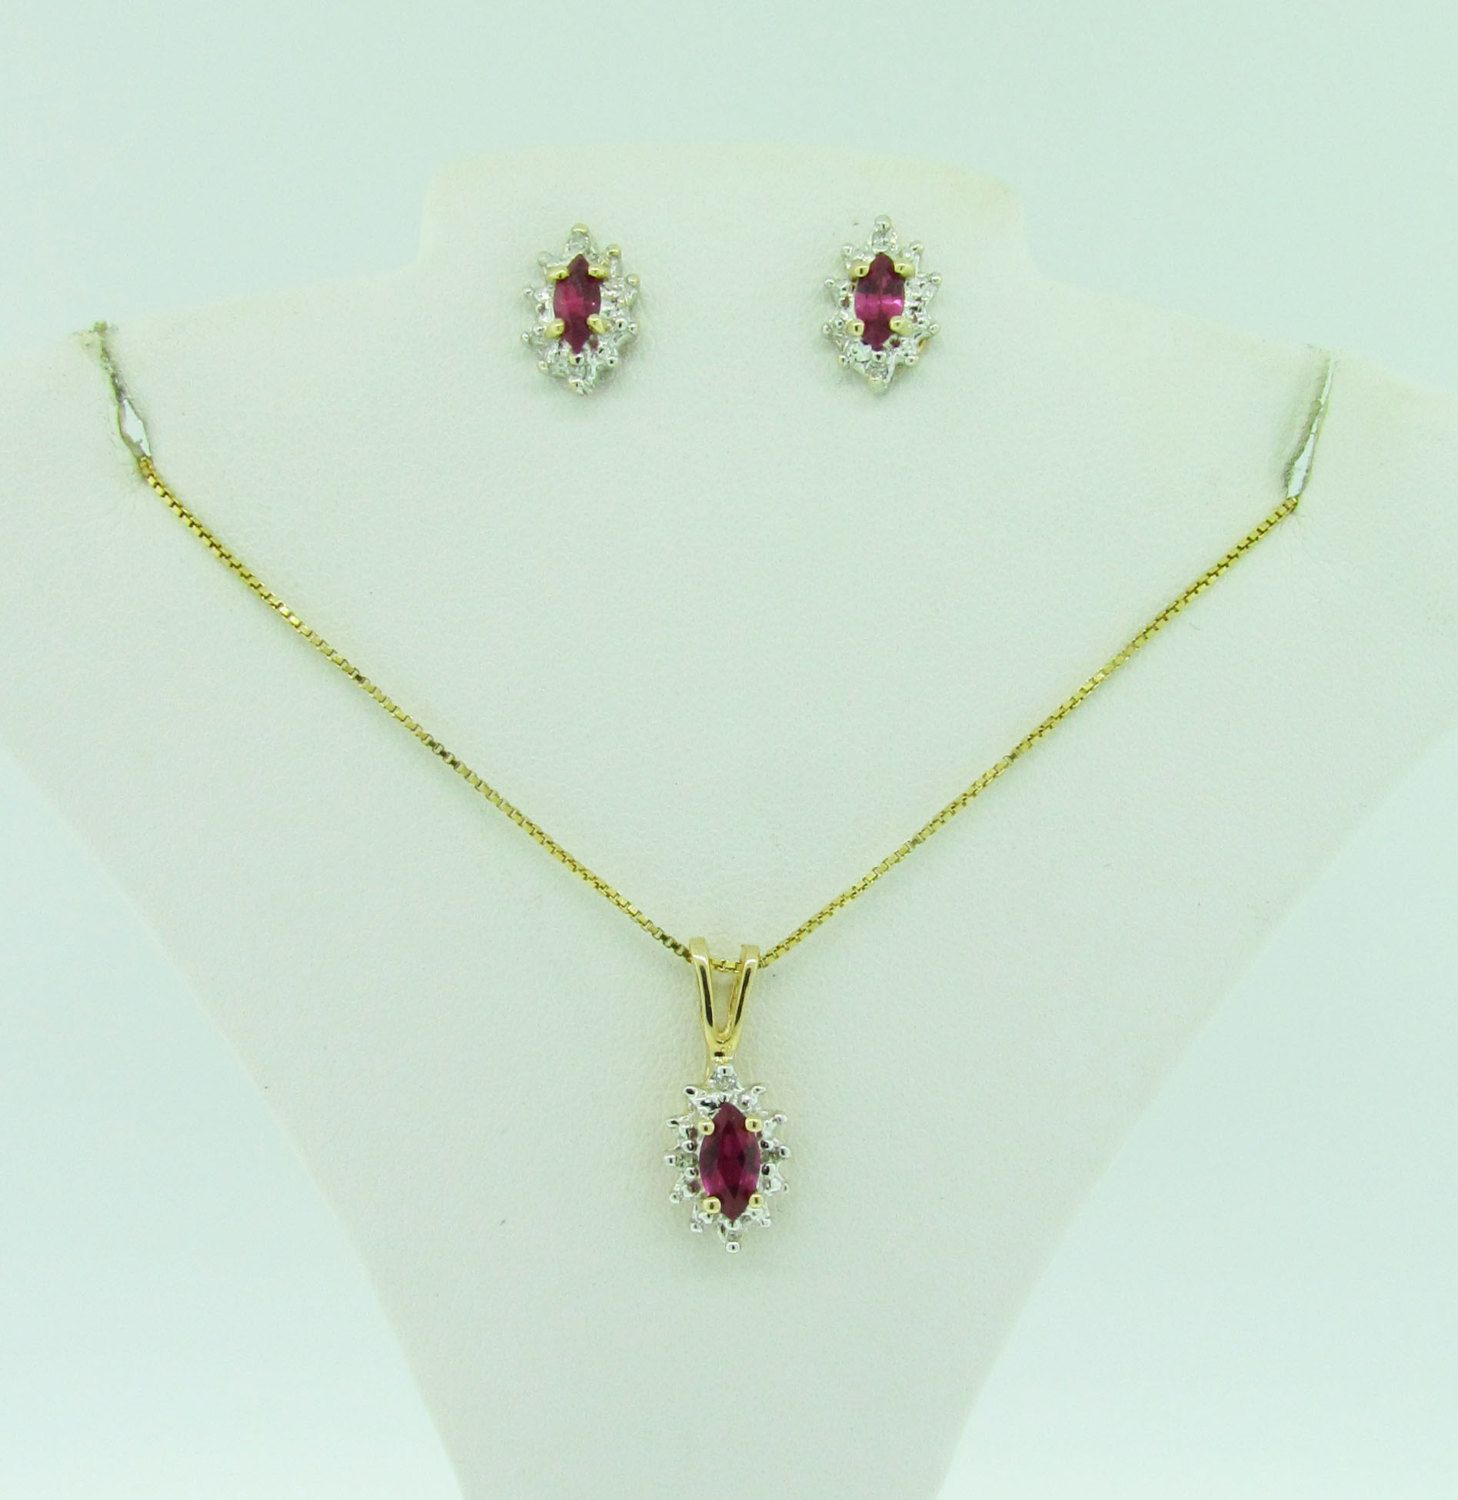 Vintage k gold diamond and artificial ruby pendant and earrings